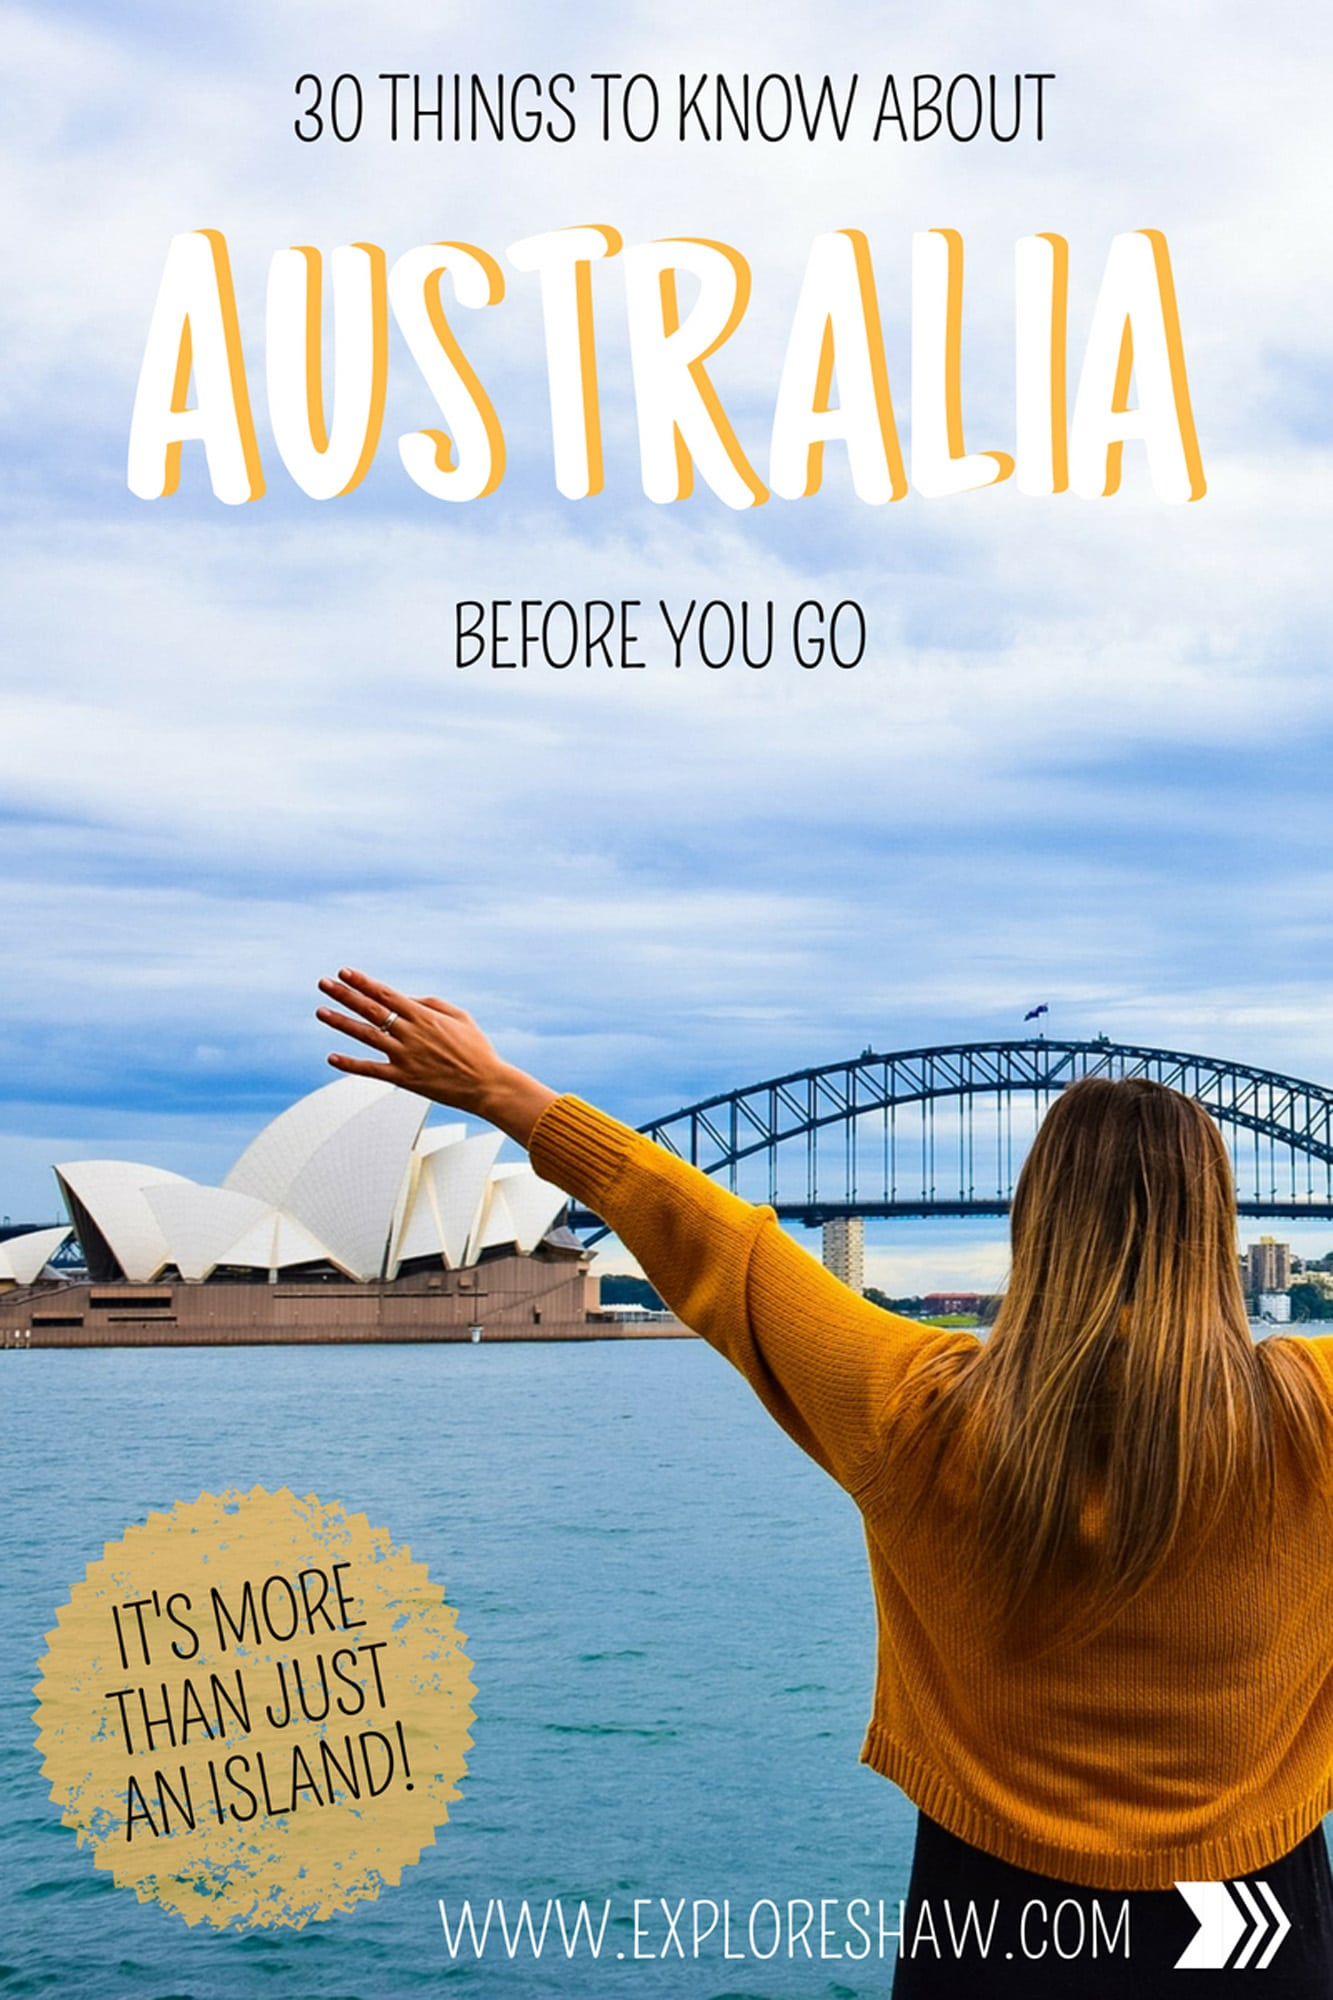 30 Things To Know About Australia Before You Go  Australia might be an island but it's absolutely HUGE and often underestimated by international visitors. Here are 30 things you need to know before you visit Australia for the first time. #Australia